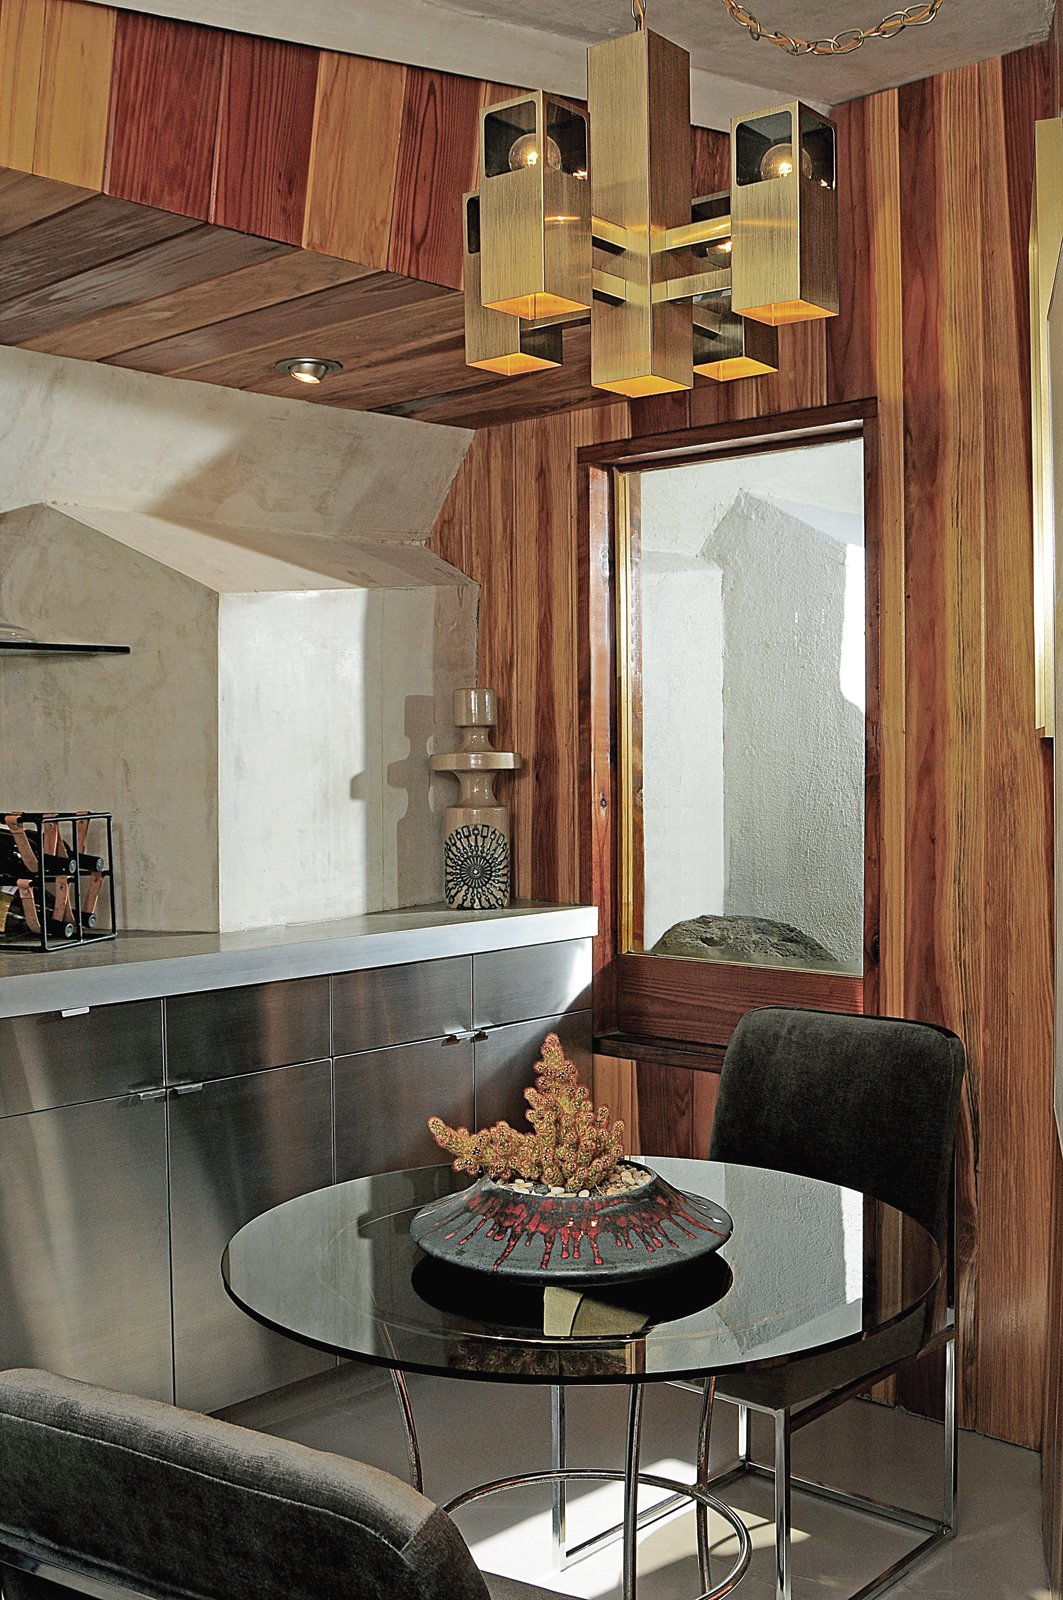 Dining Room, Table, Chair, and Pendant Lighting The eat-in kitchen features poured-in-place concrete countertops and redwood wall paneling.  Photo 3 of 5 in John Lautner's Desert Rose